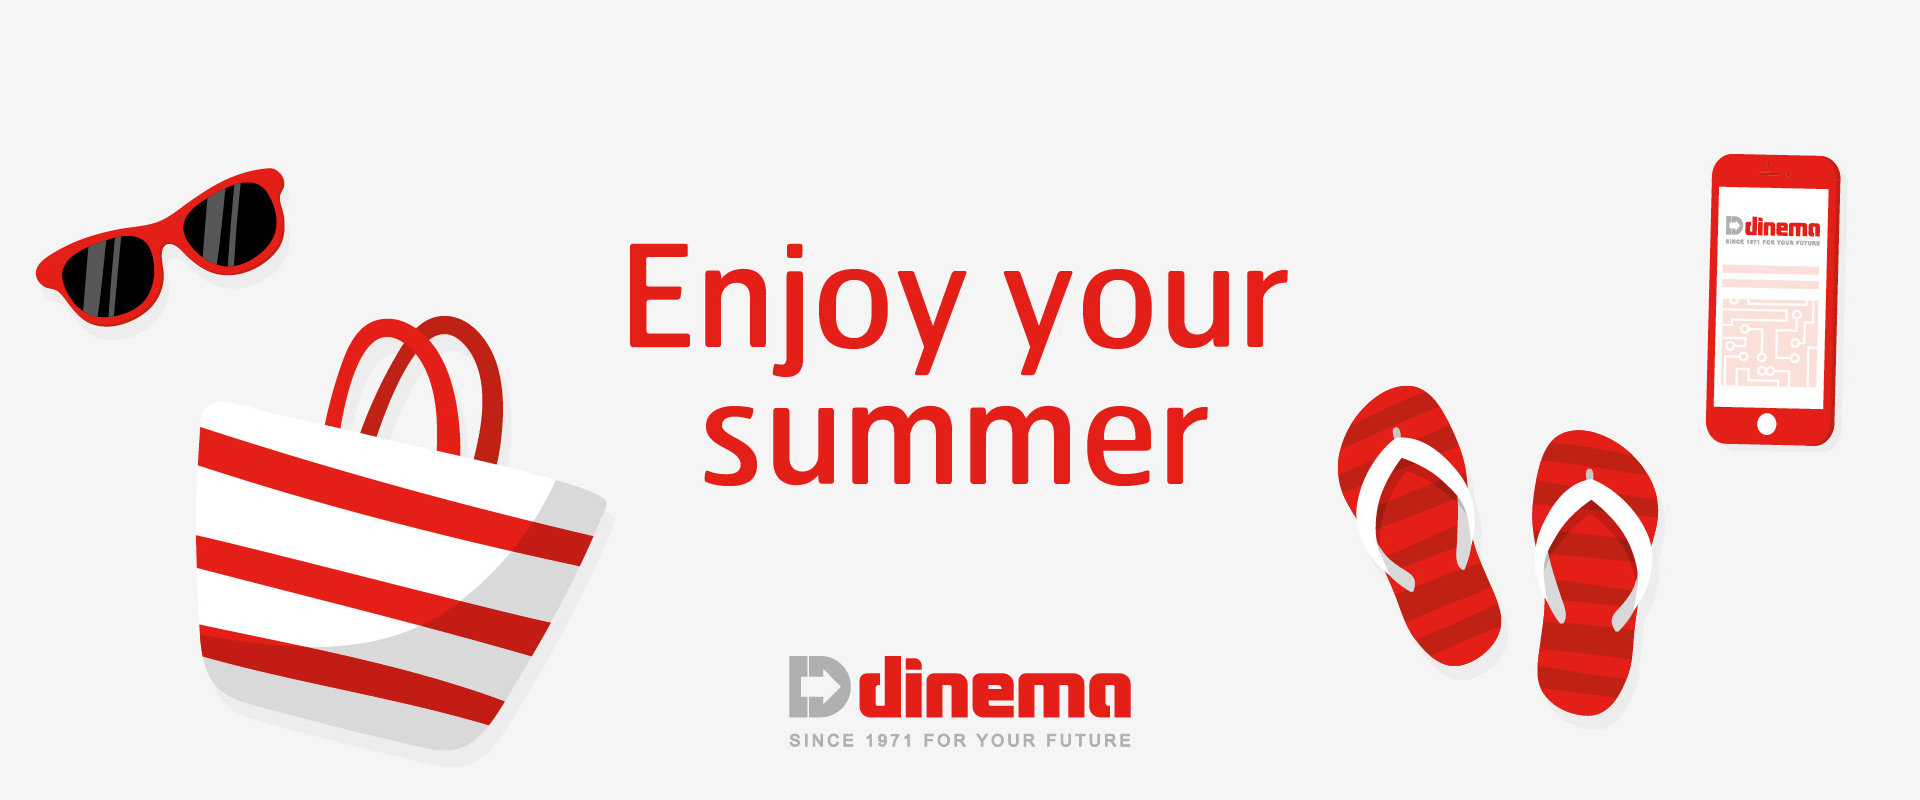 Dinema @ Enjoy your summer